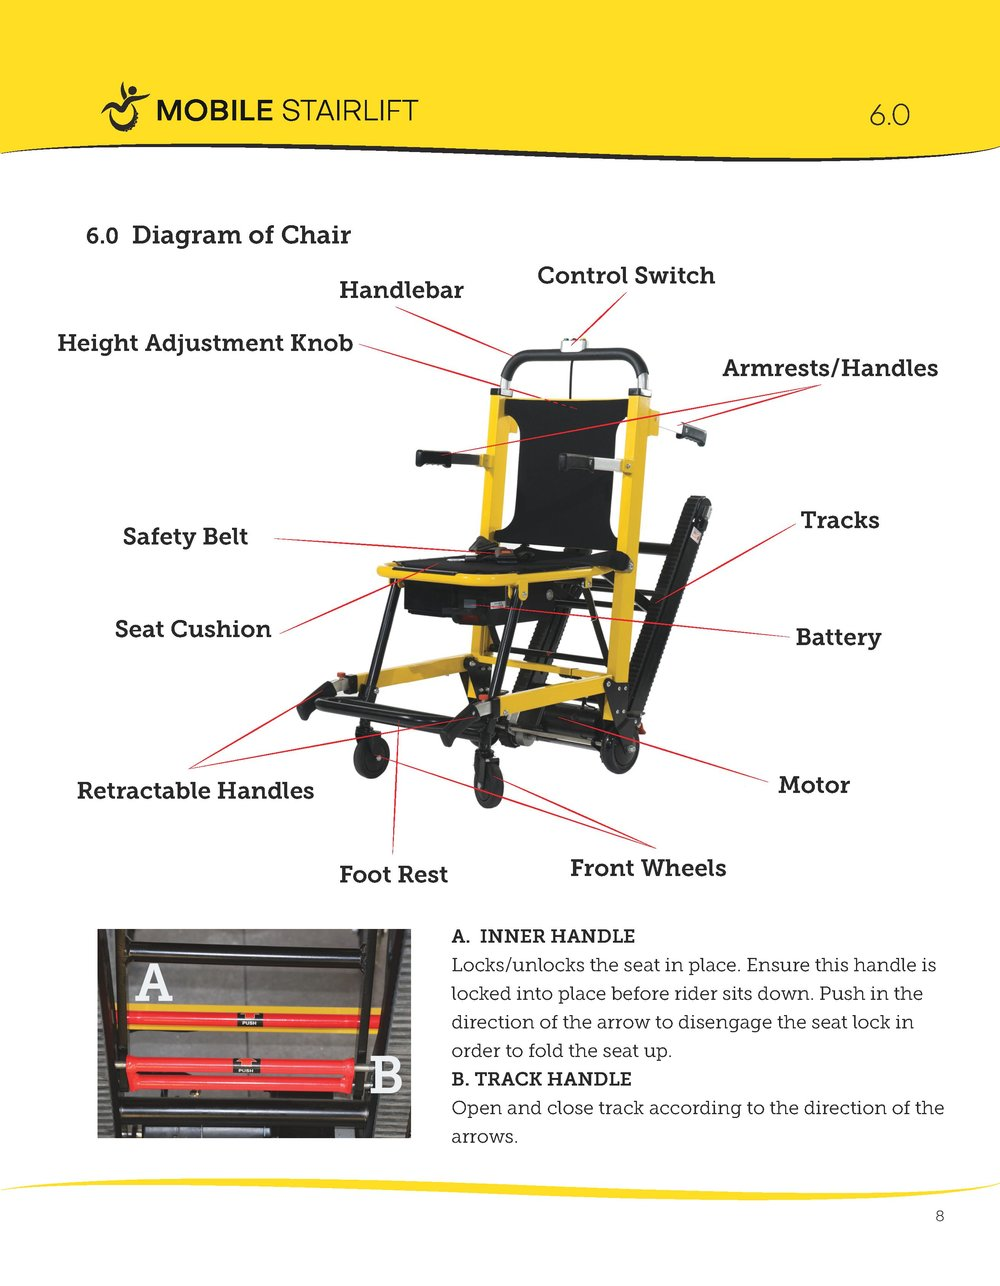 Mobile Stairlift Instruction Manual-9.jpg